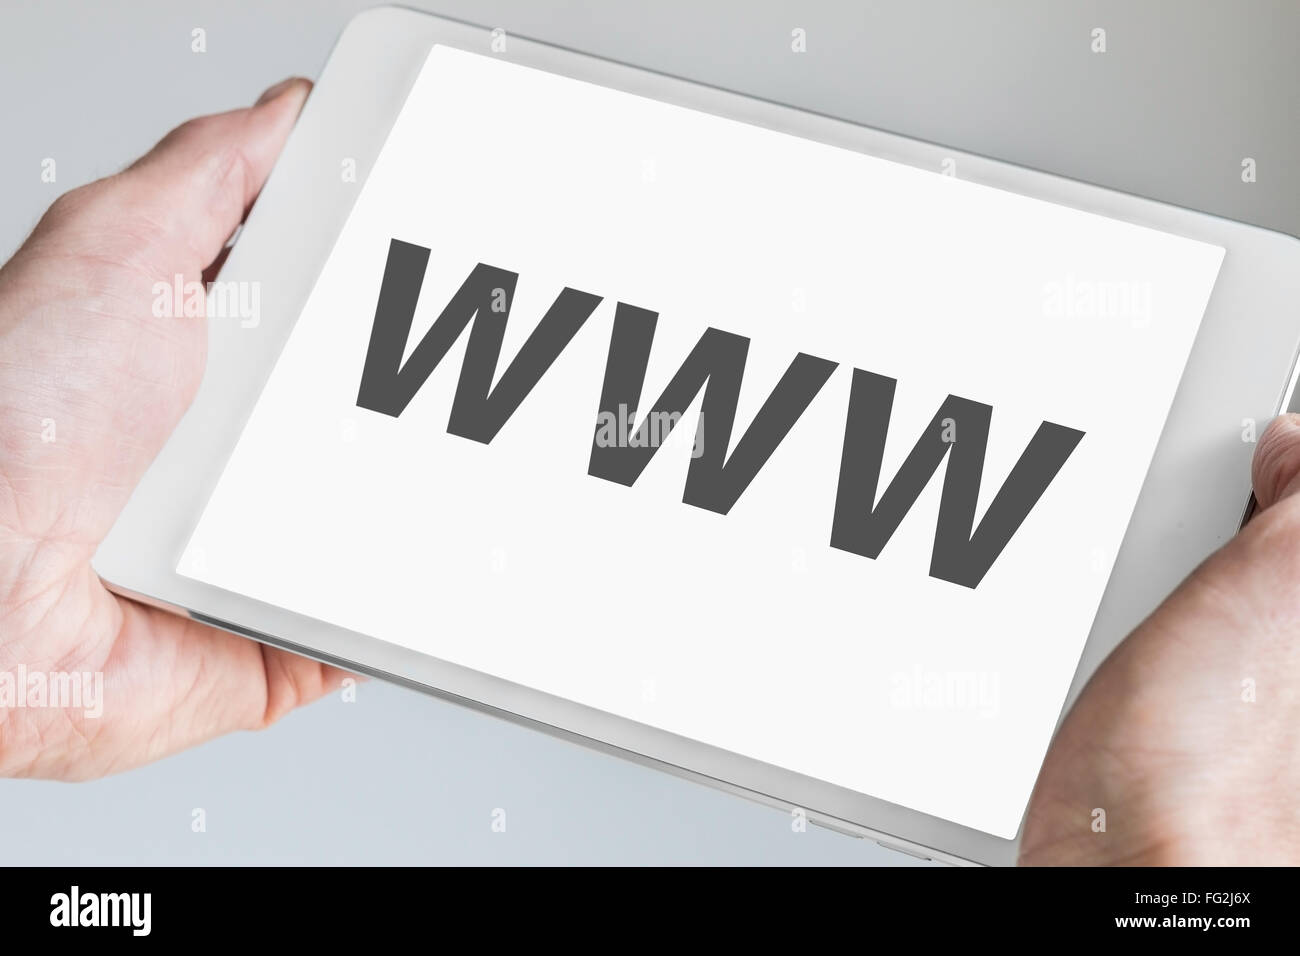 WWW (world wide web) text displayed on touch screen of modern tablet. Hands holding white mobile device - Stock Image